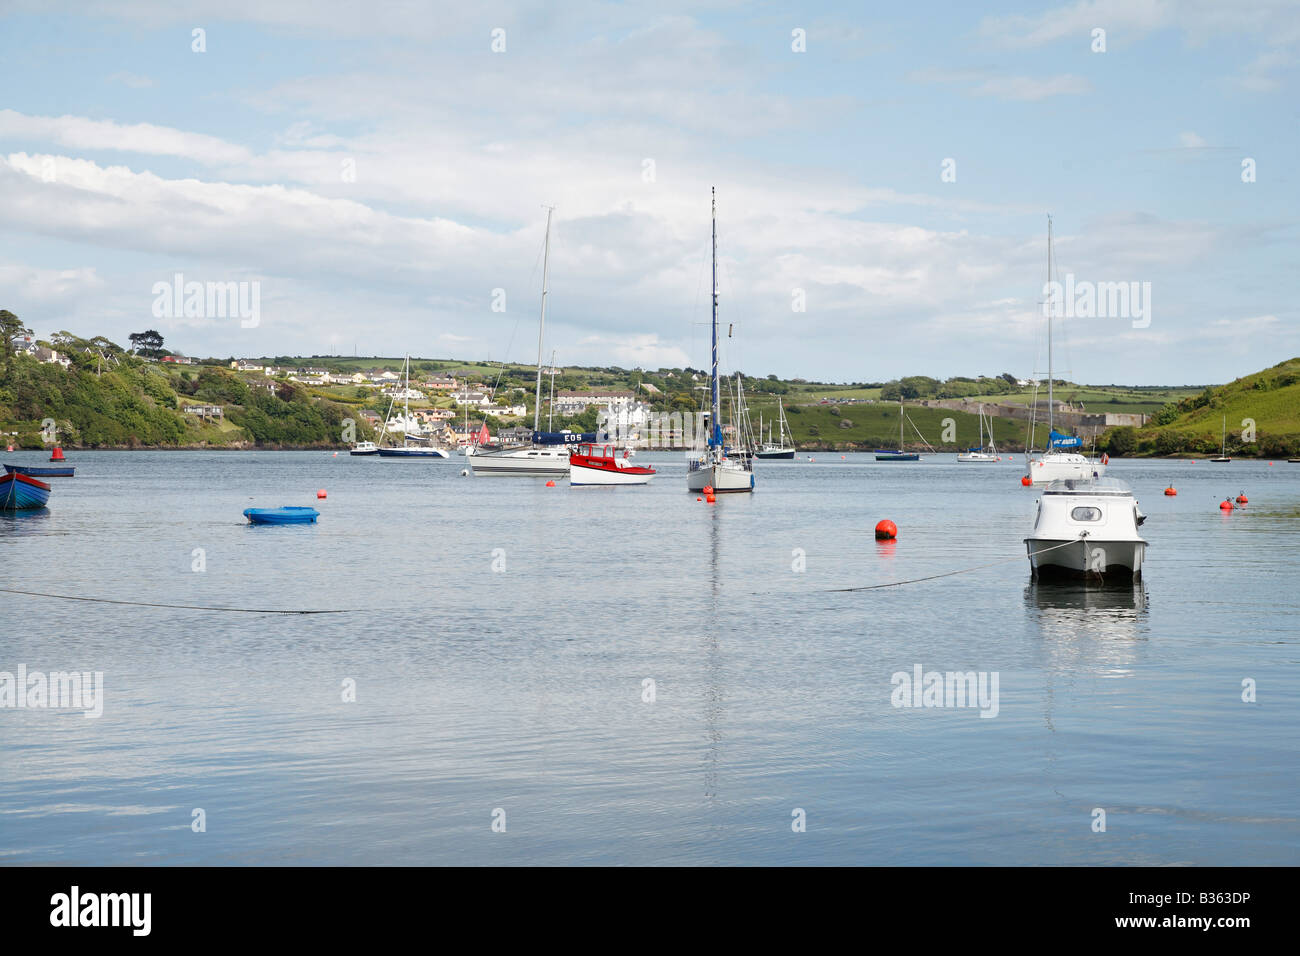 View from Kinsale to Summer Cove in Co Cork Ireland - Stock Image